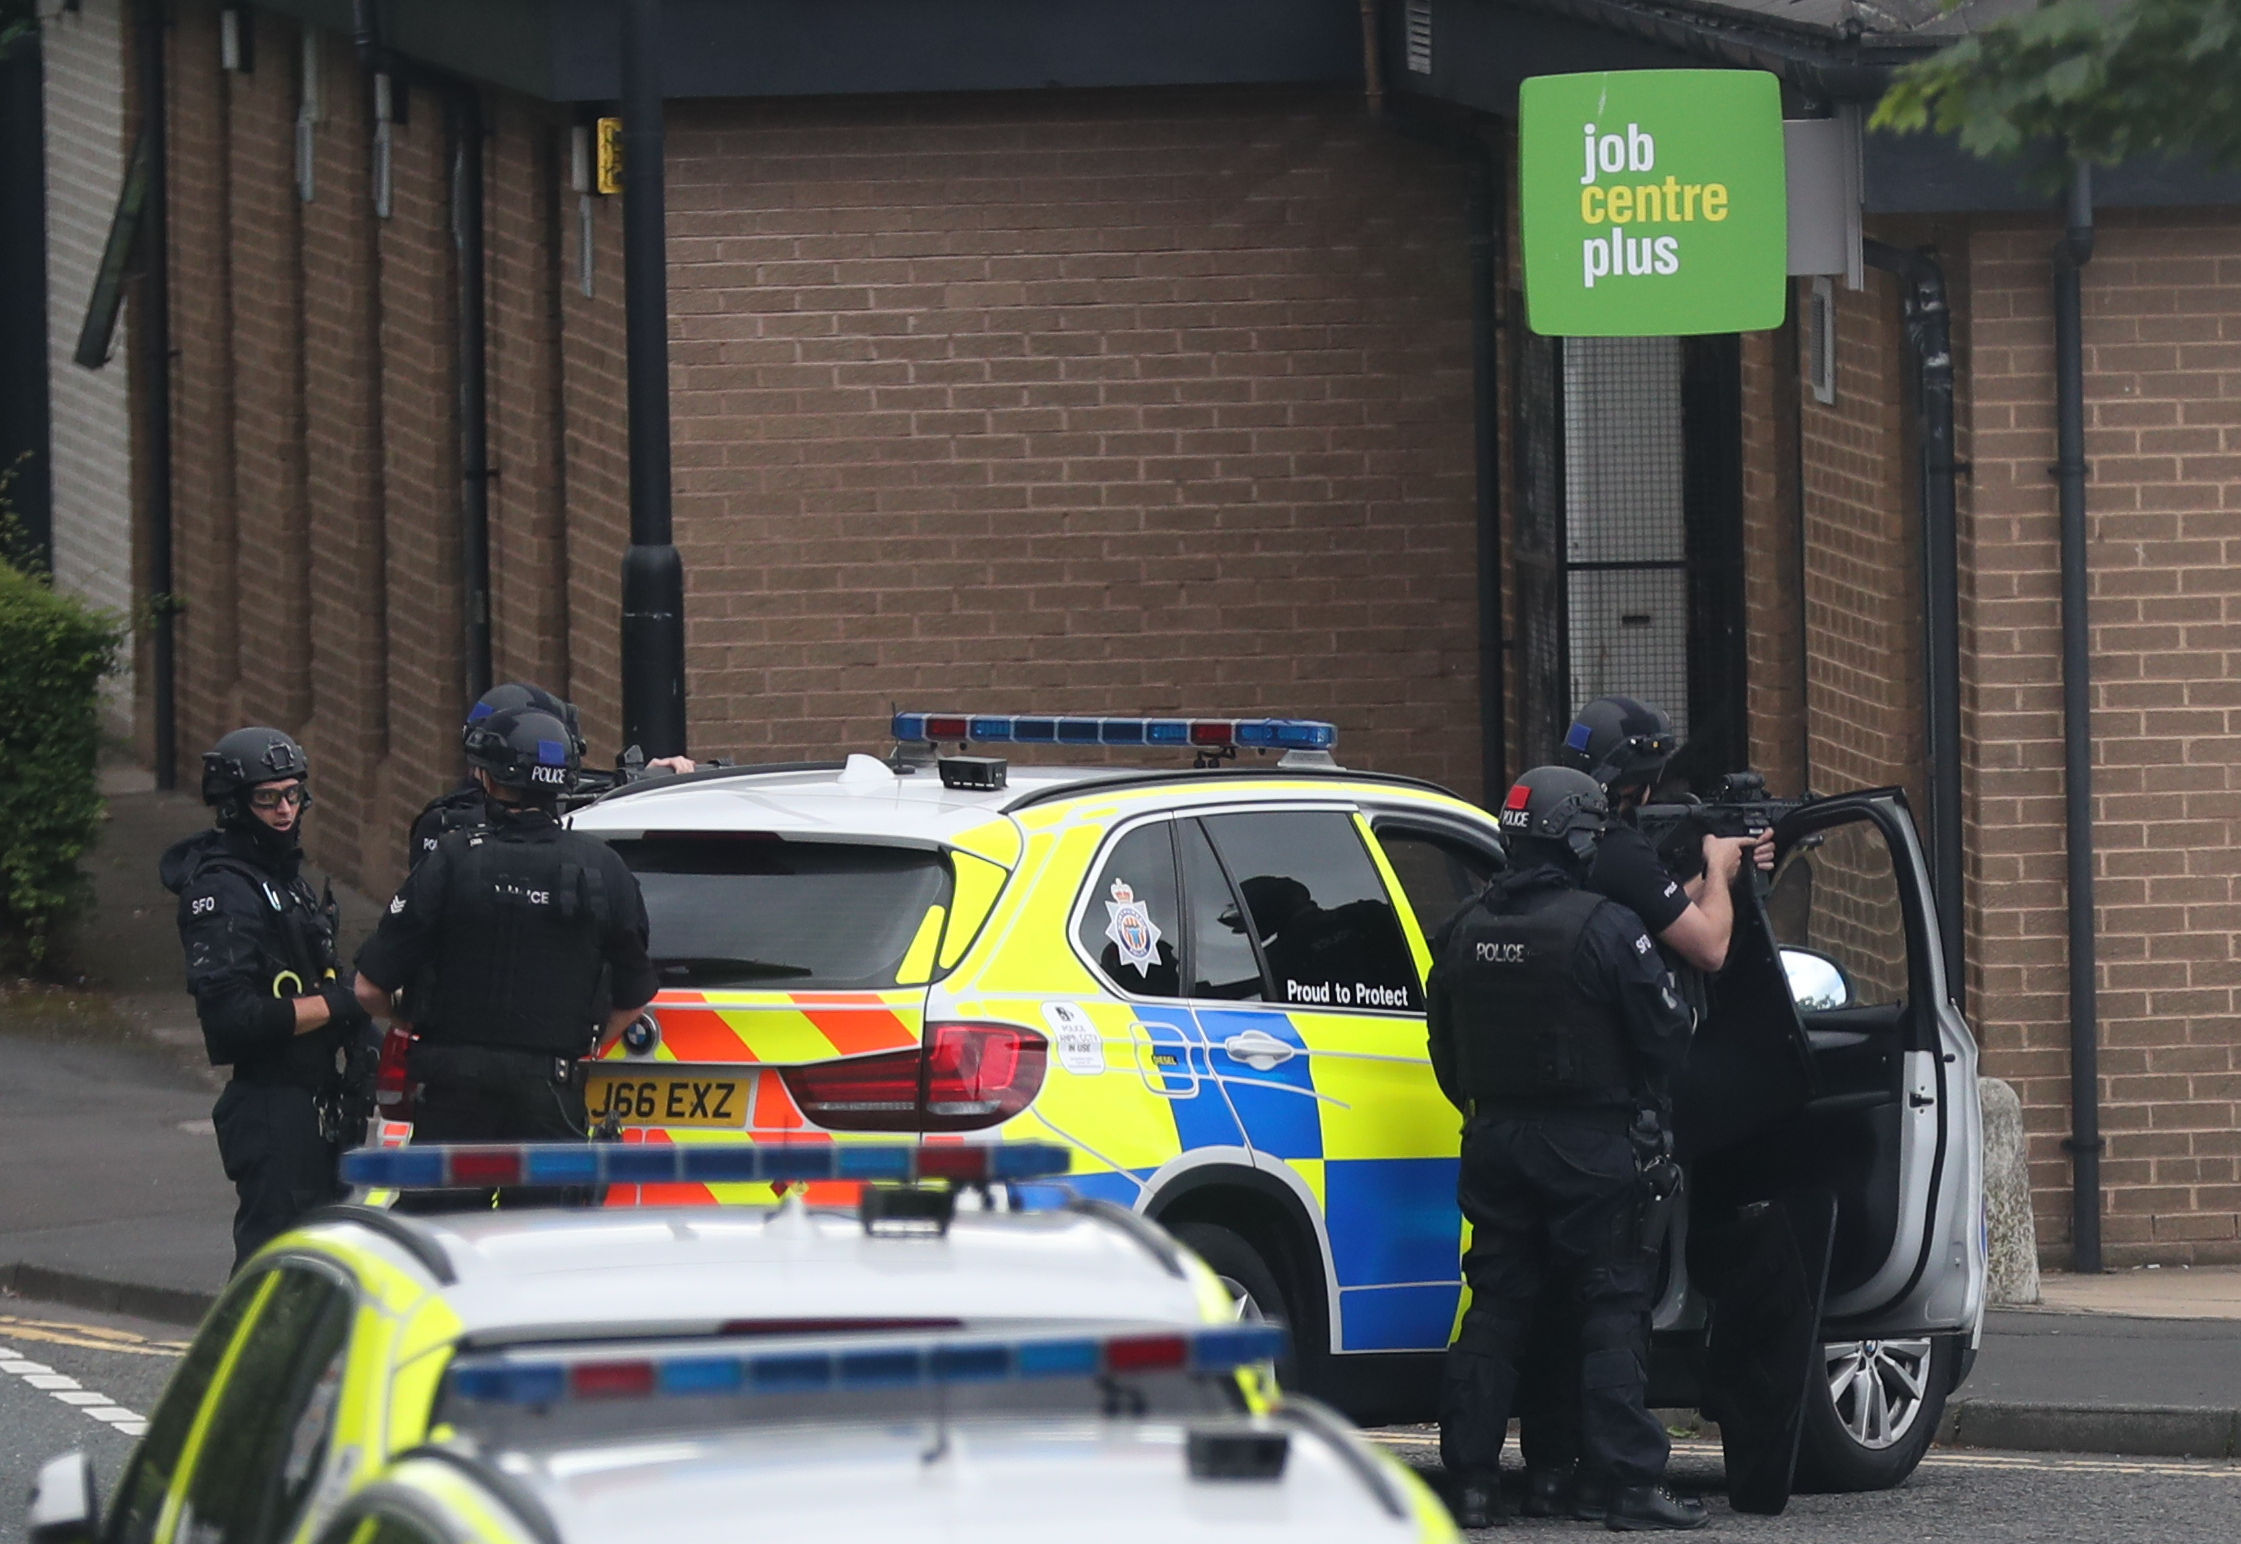 Armed police outside a Jobcentre where a man armed with a knife took people hostage